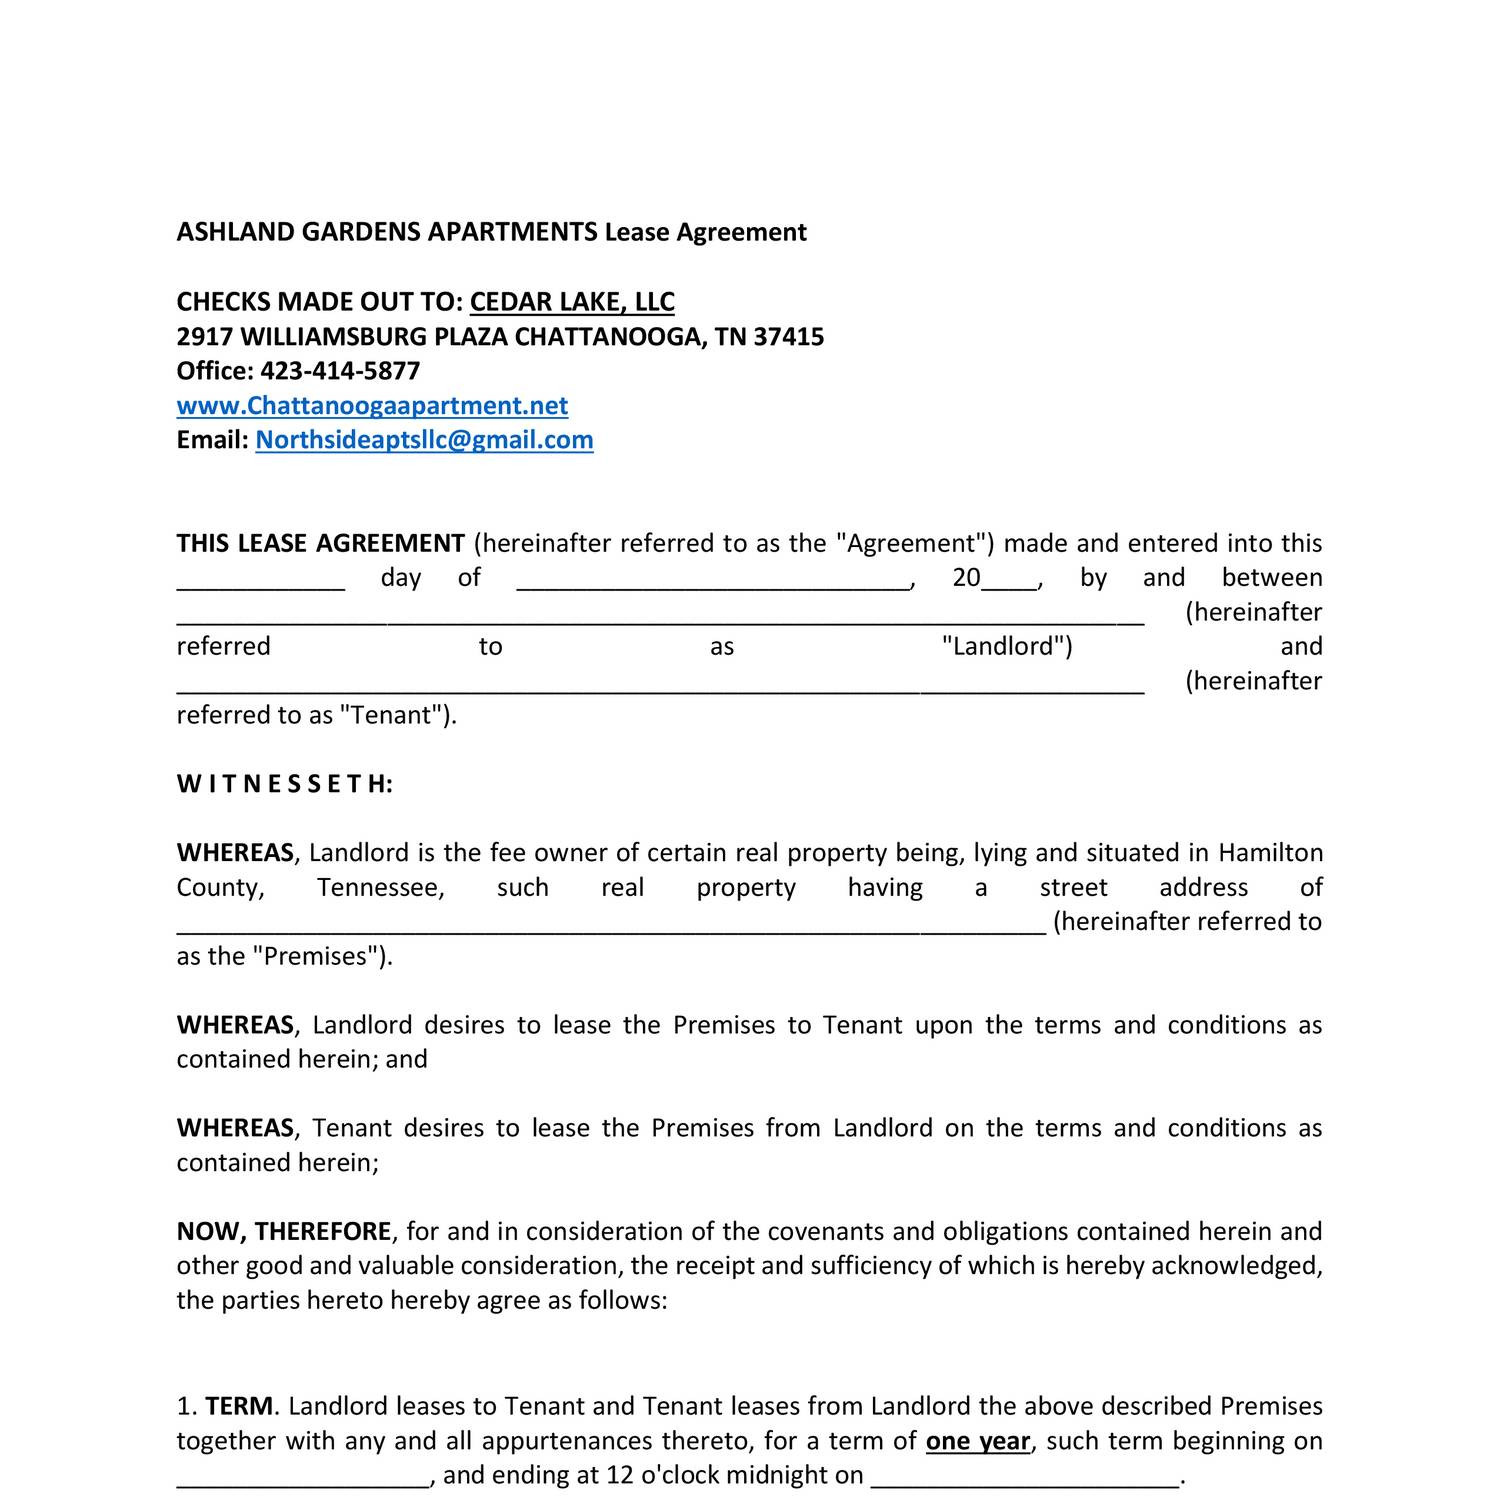 Ashland Gardens Apartment Lease Agreement Mainpdf Docdroid